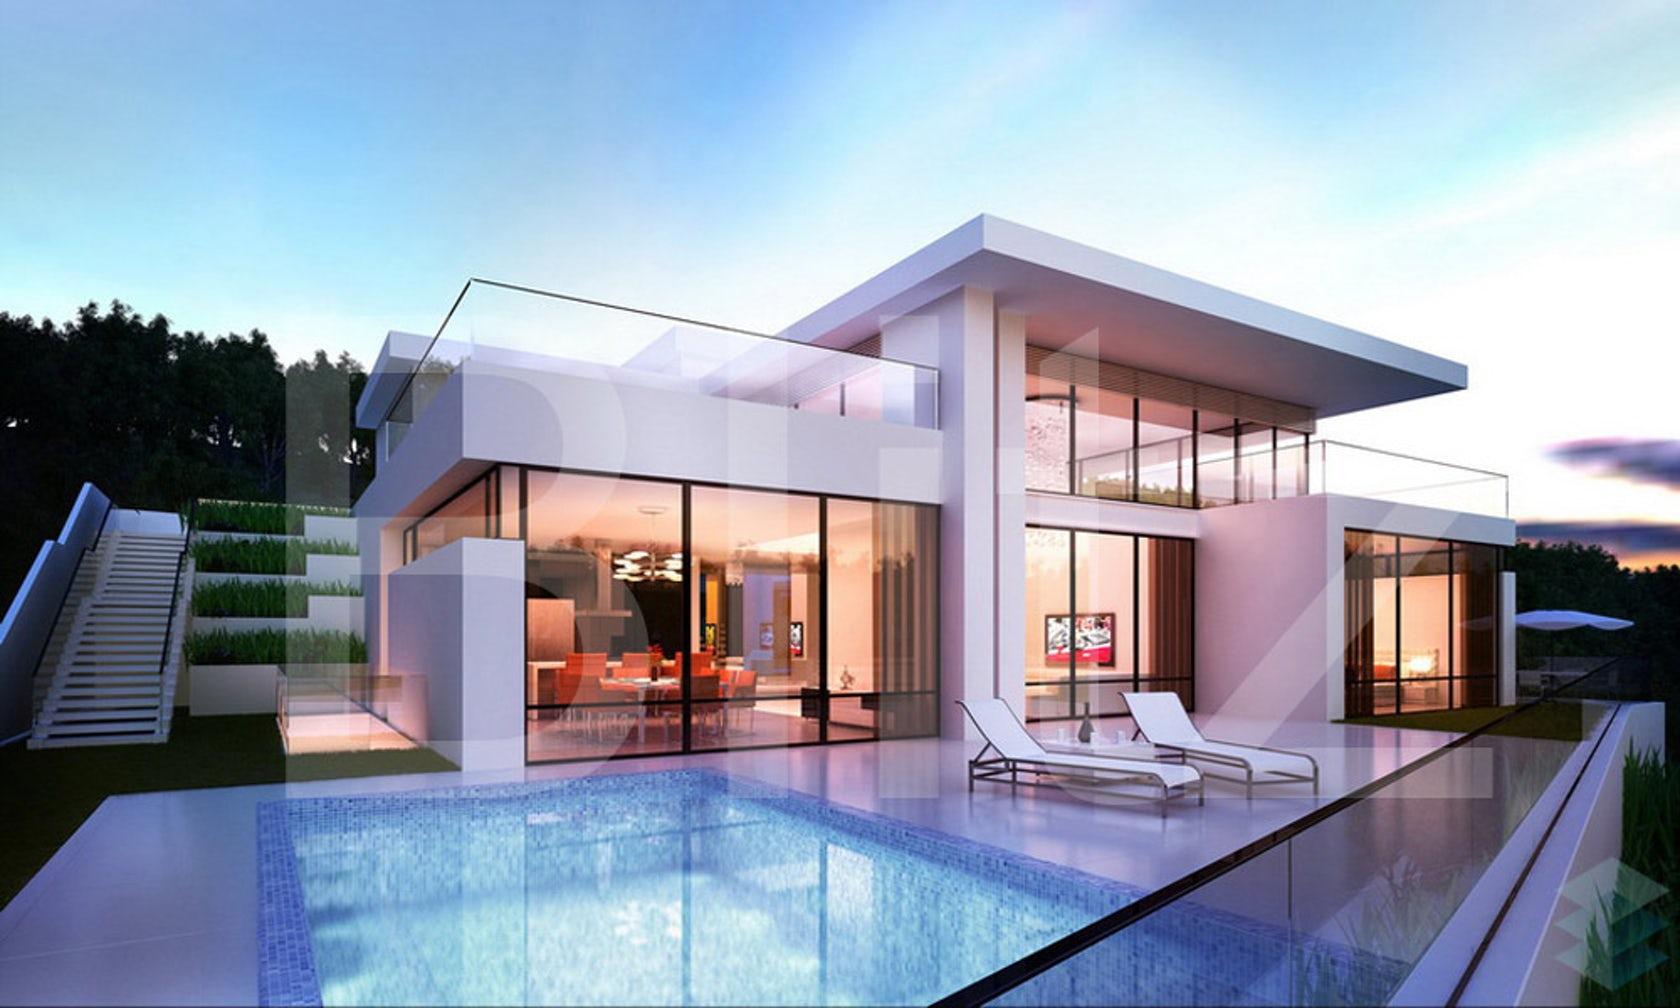 3d animation company architizer - 3d home exterior design tool download ...